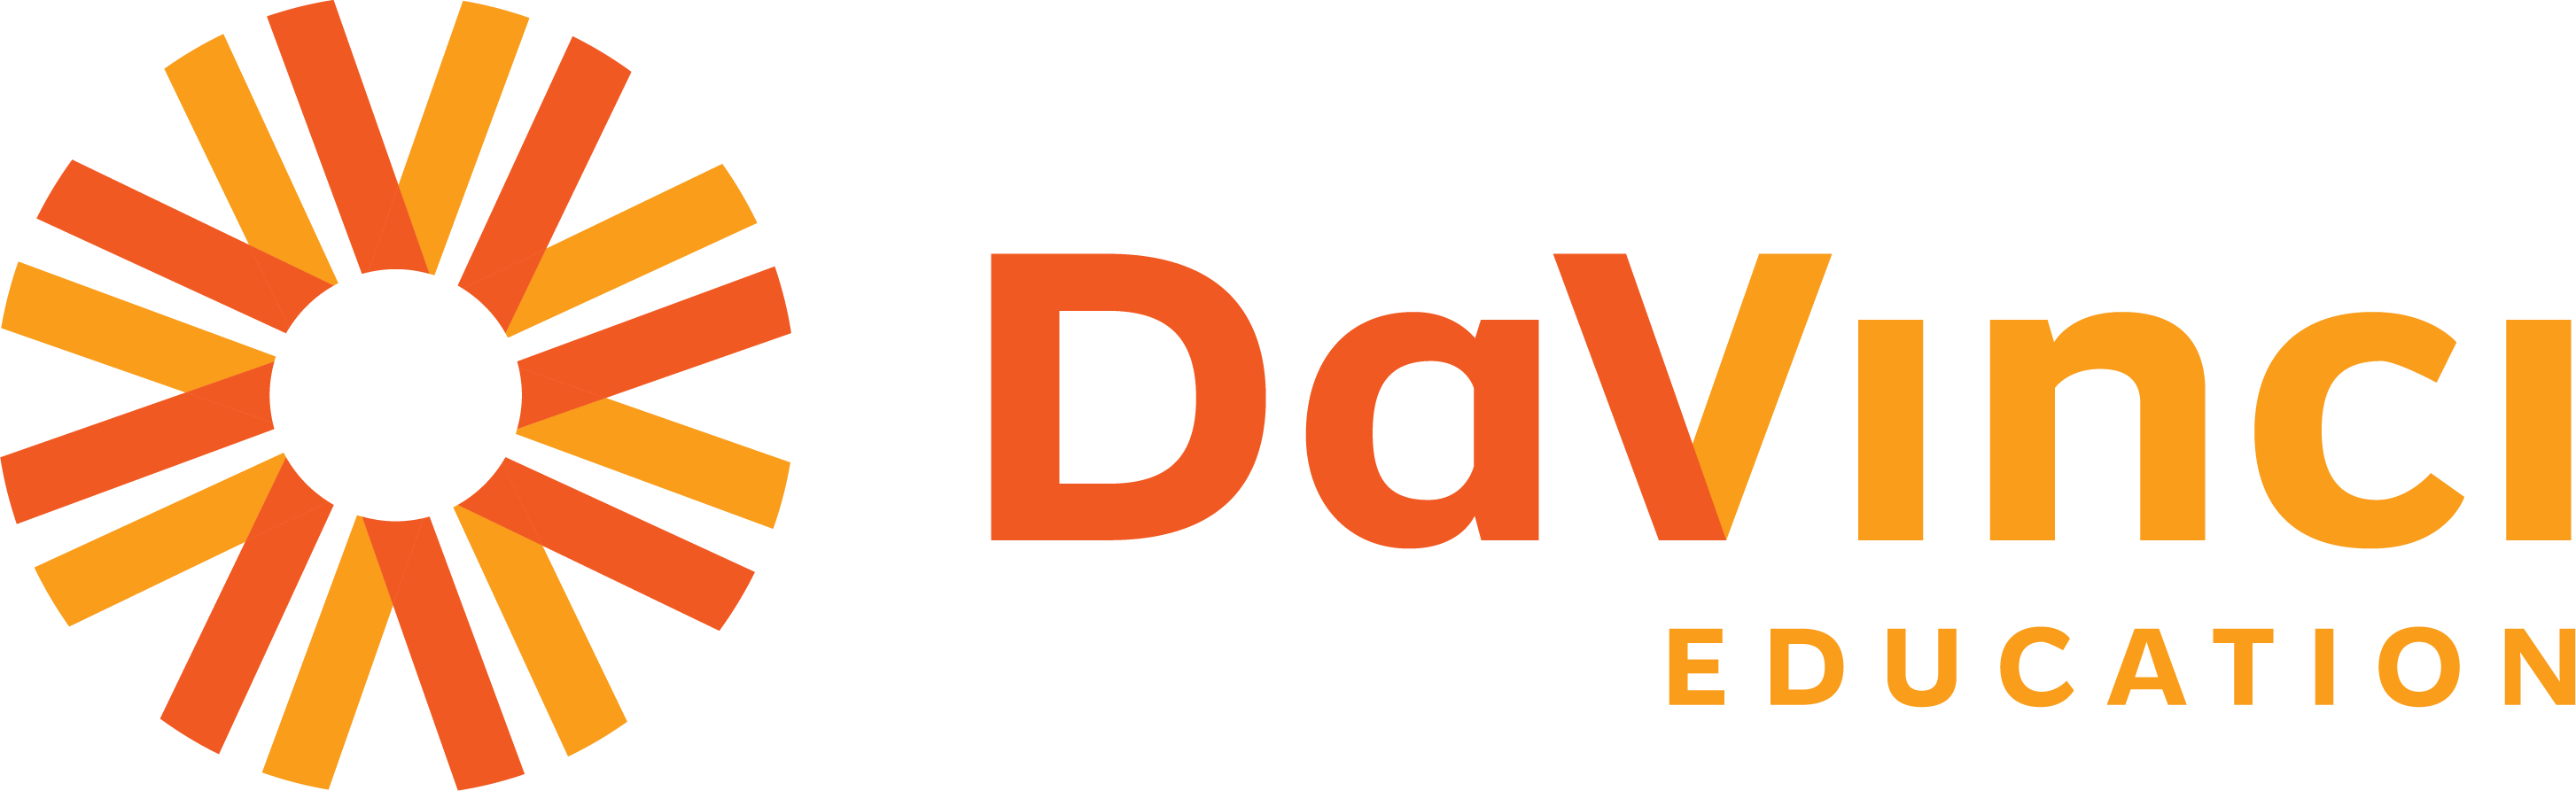 DaVinci Education logo color